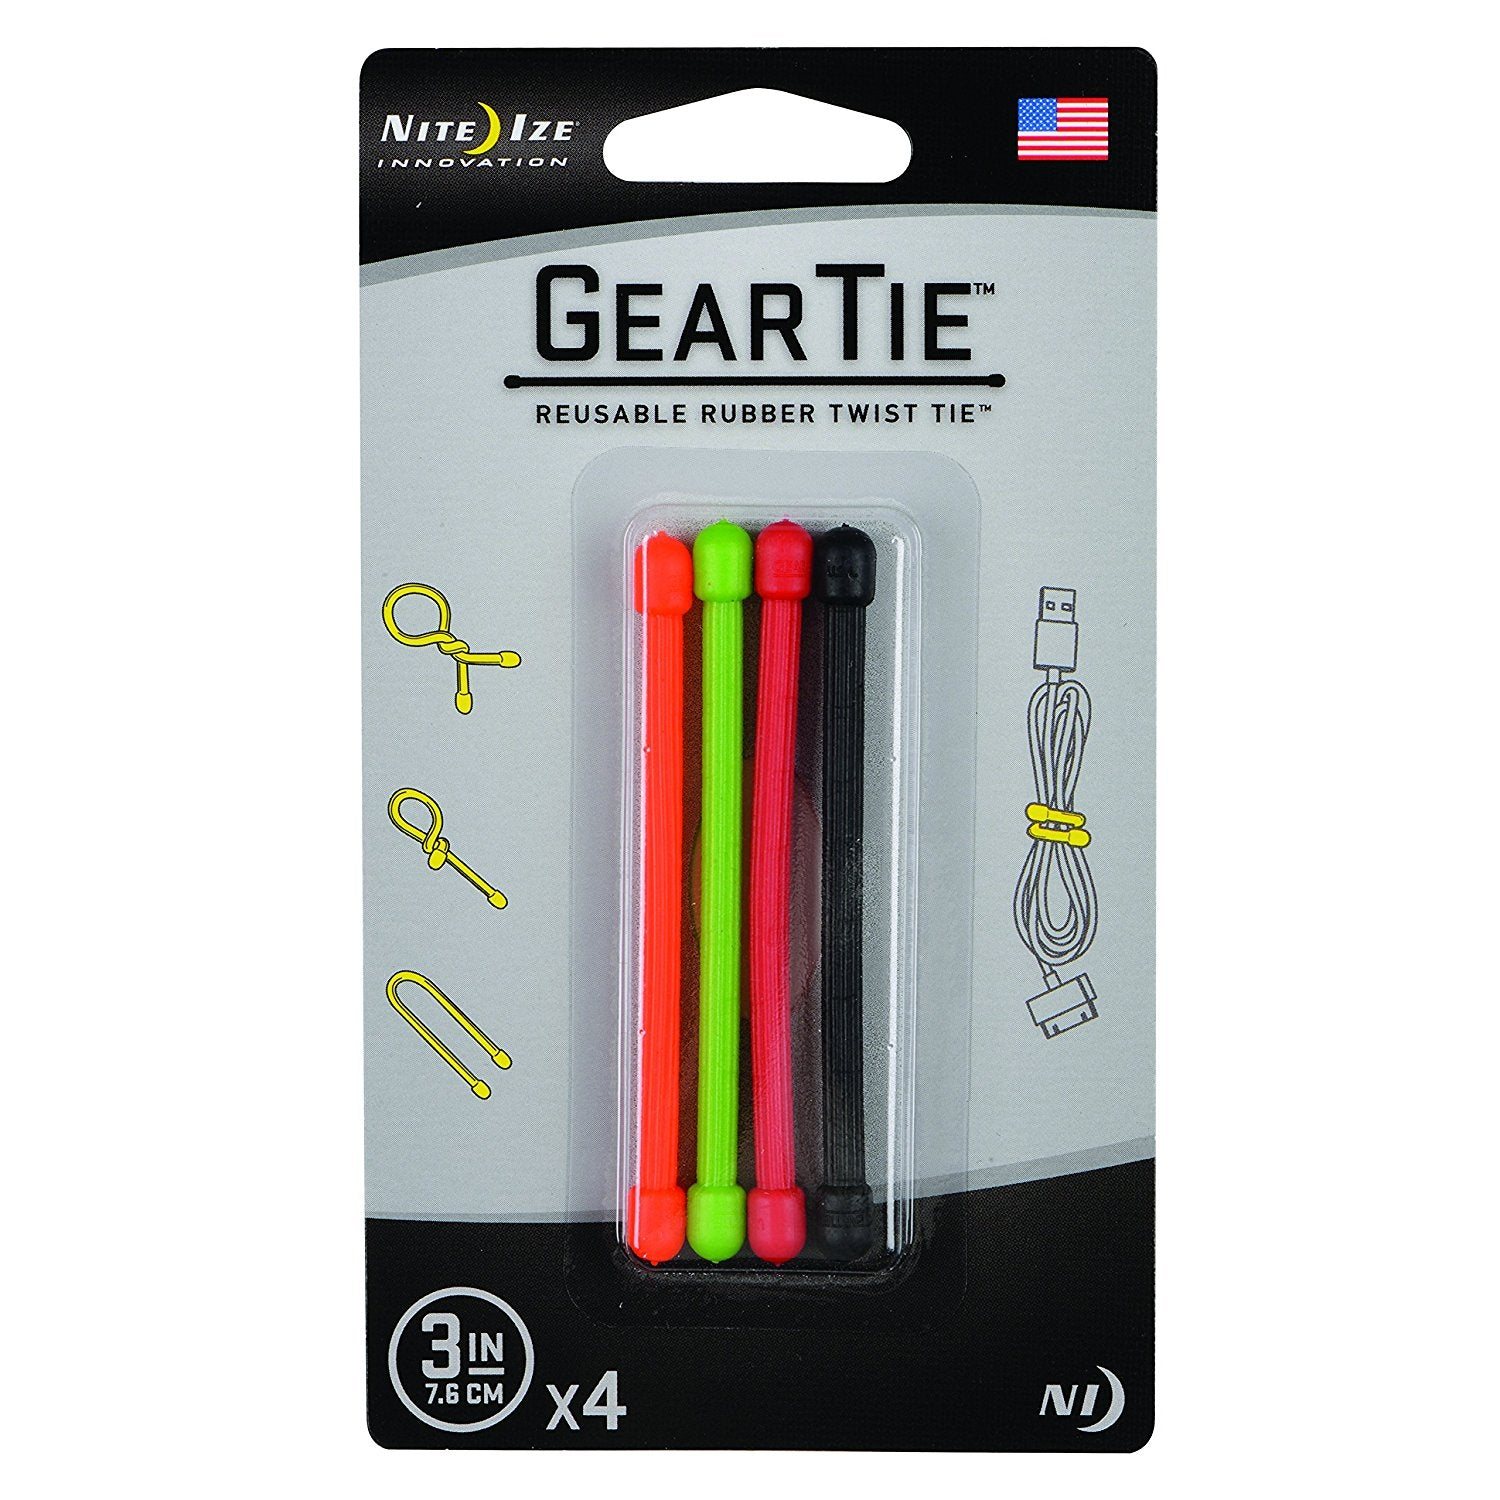 3 in. Gear Ties